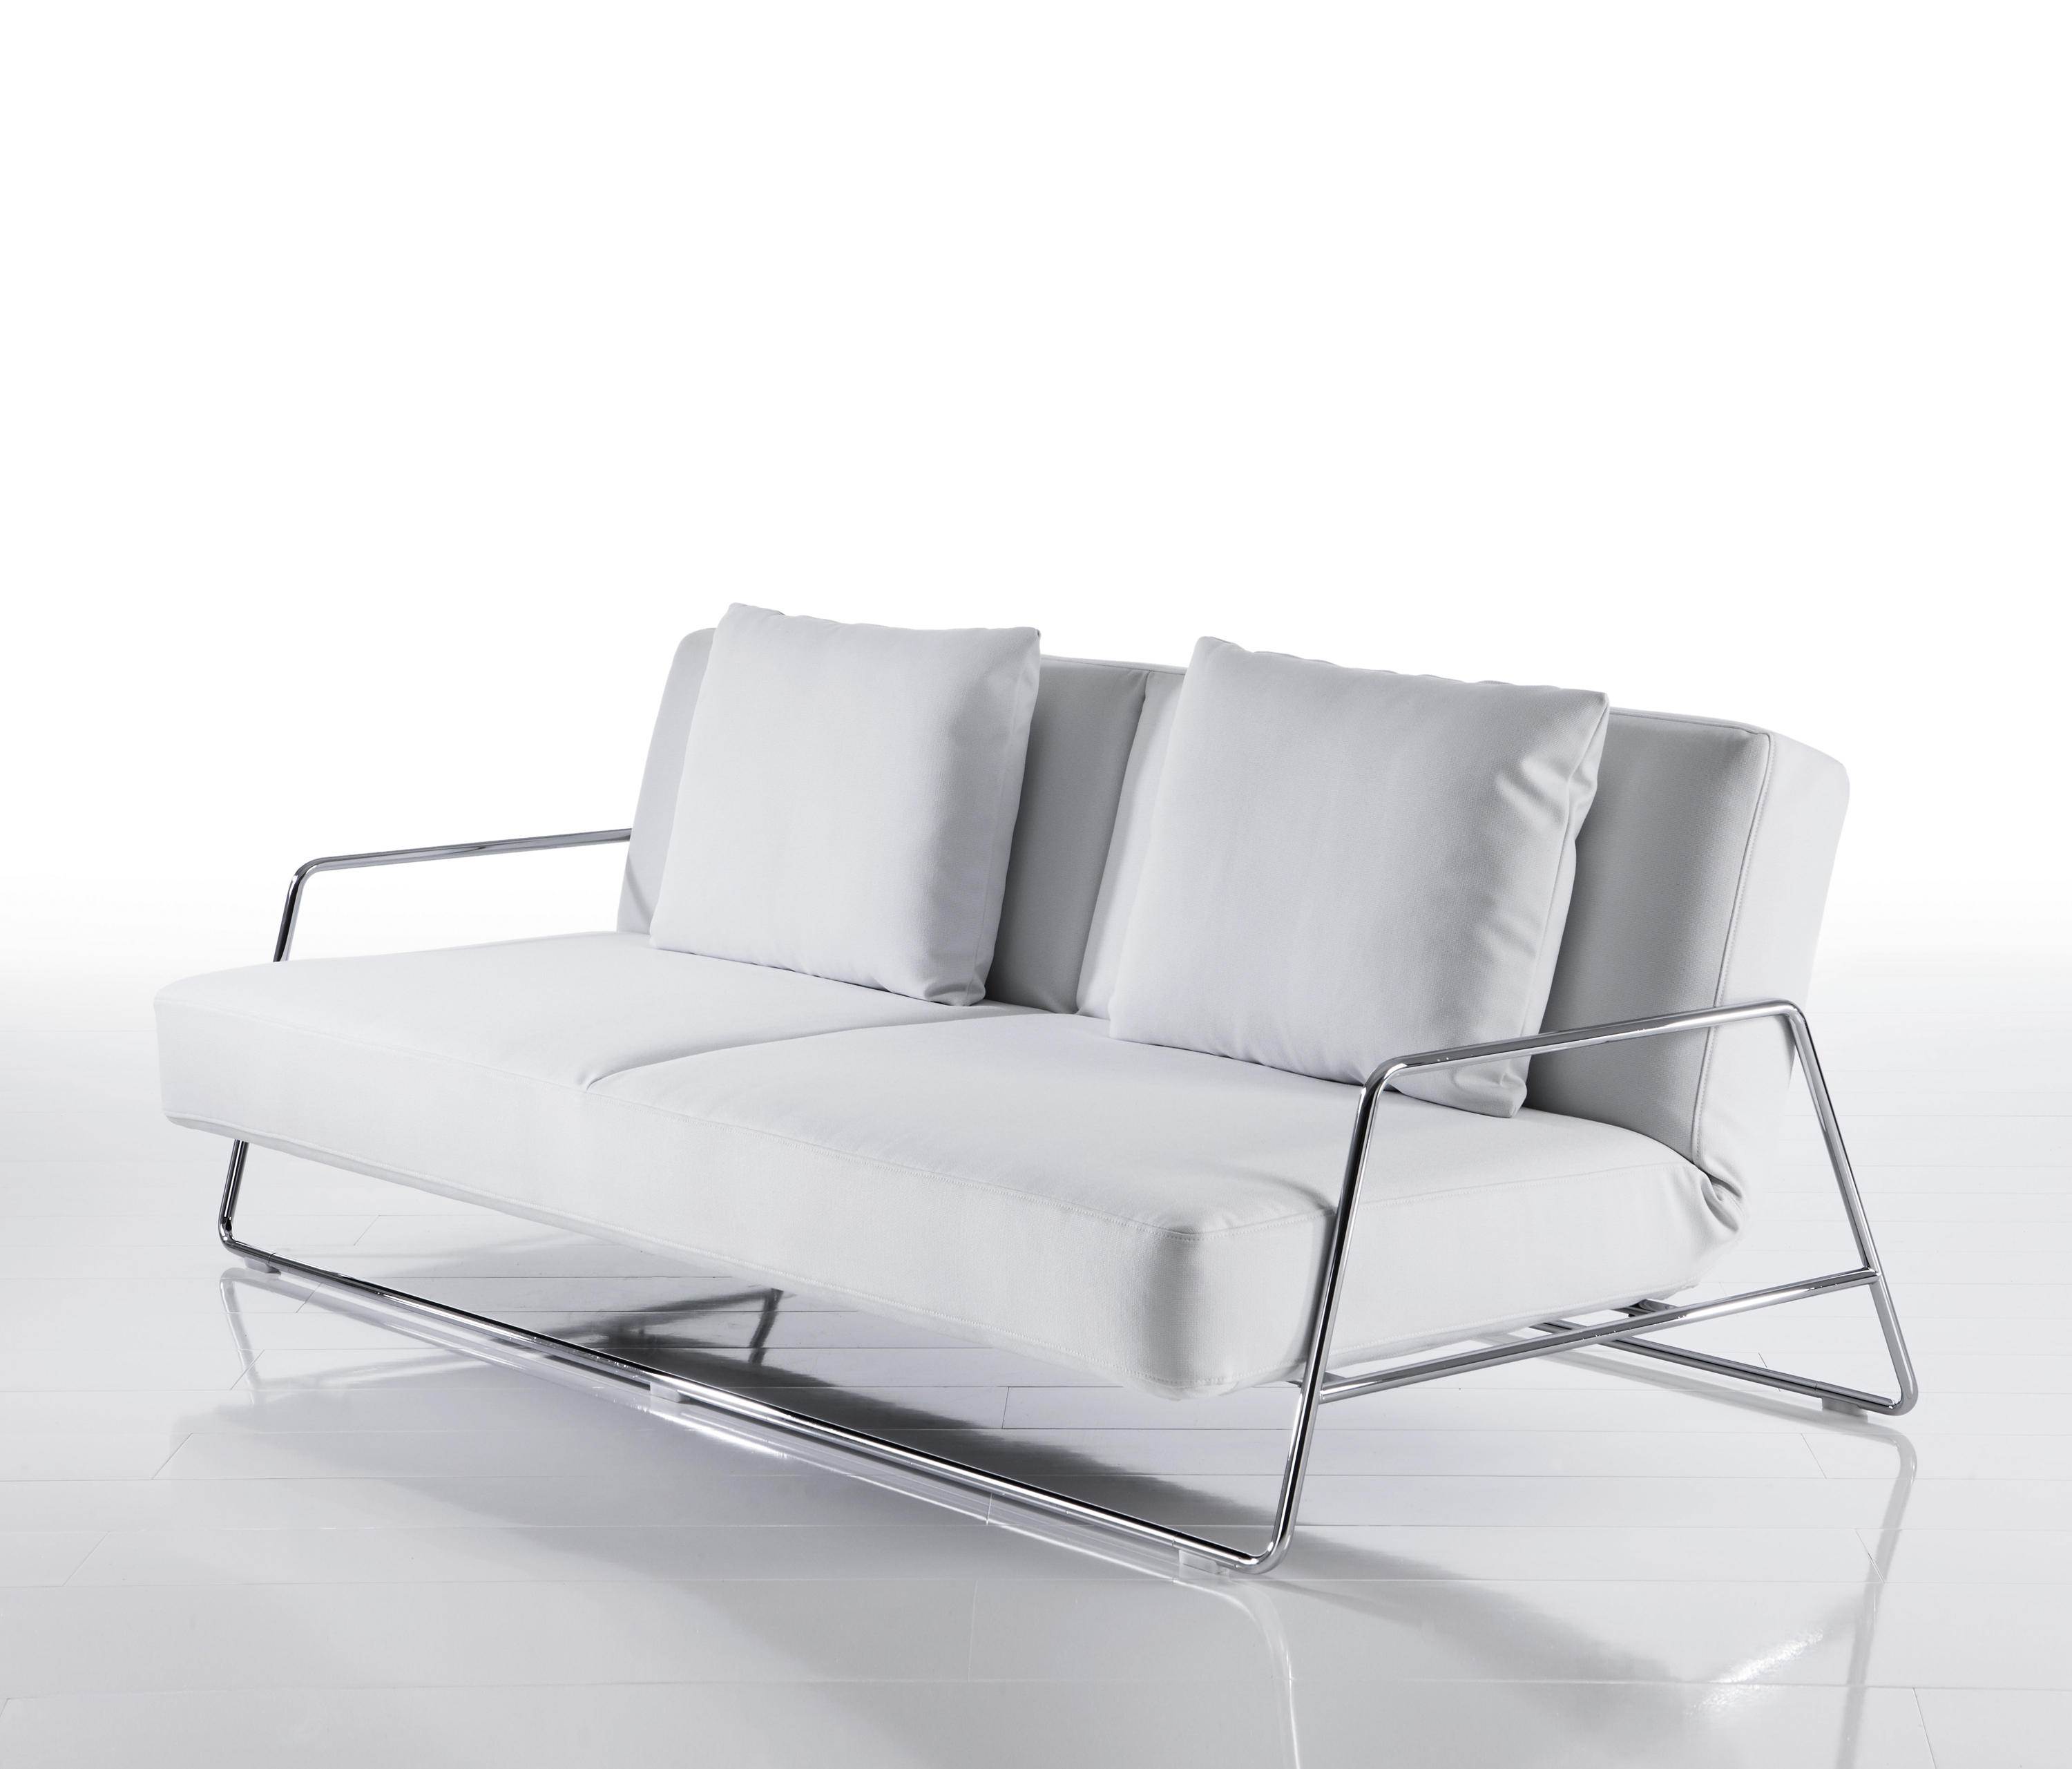 square sofa beds flexsteel bexley with nails sofabed sofas from brühl architonic